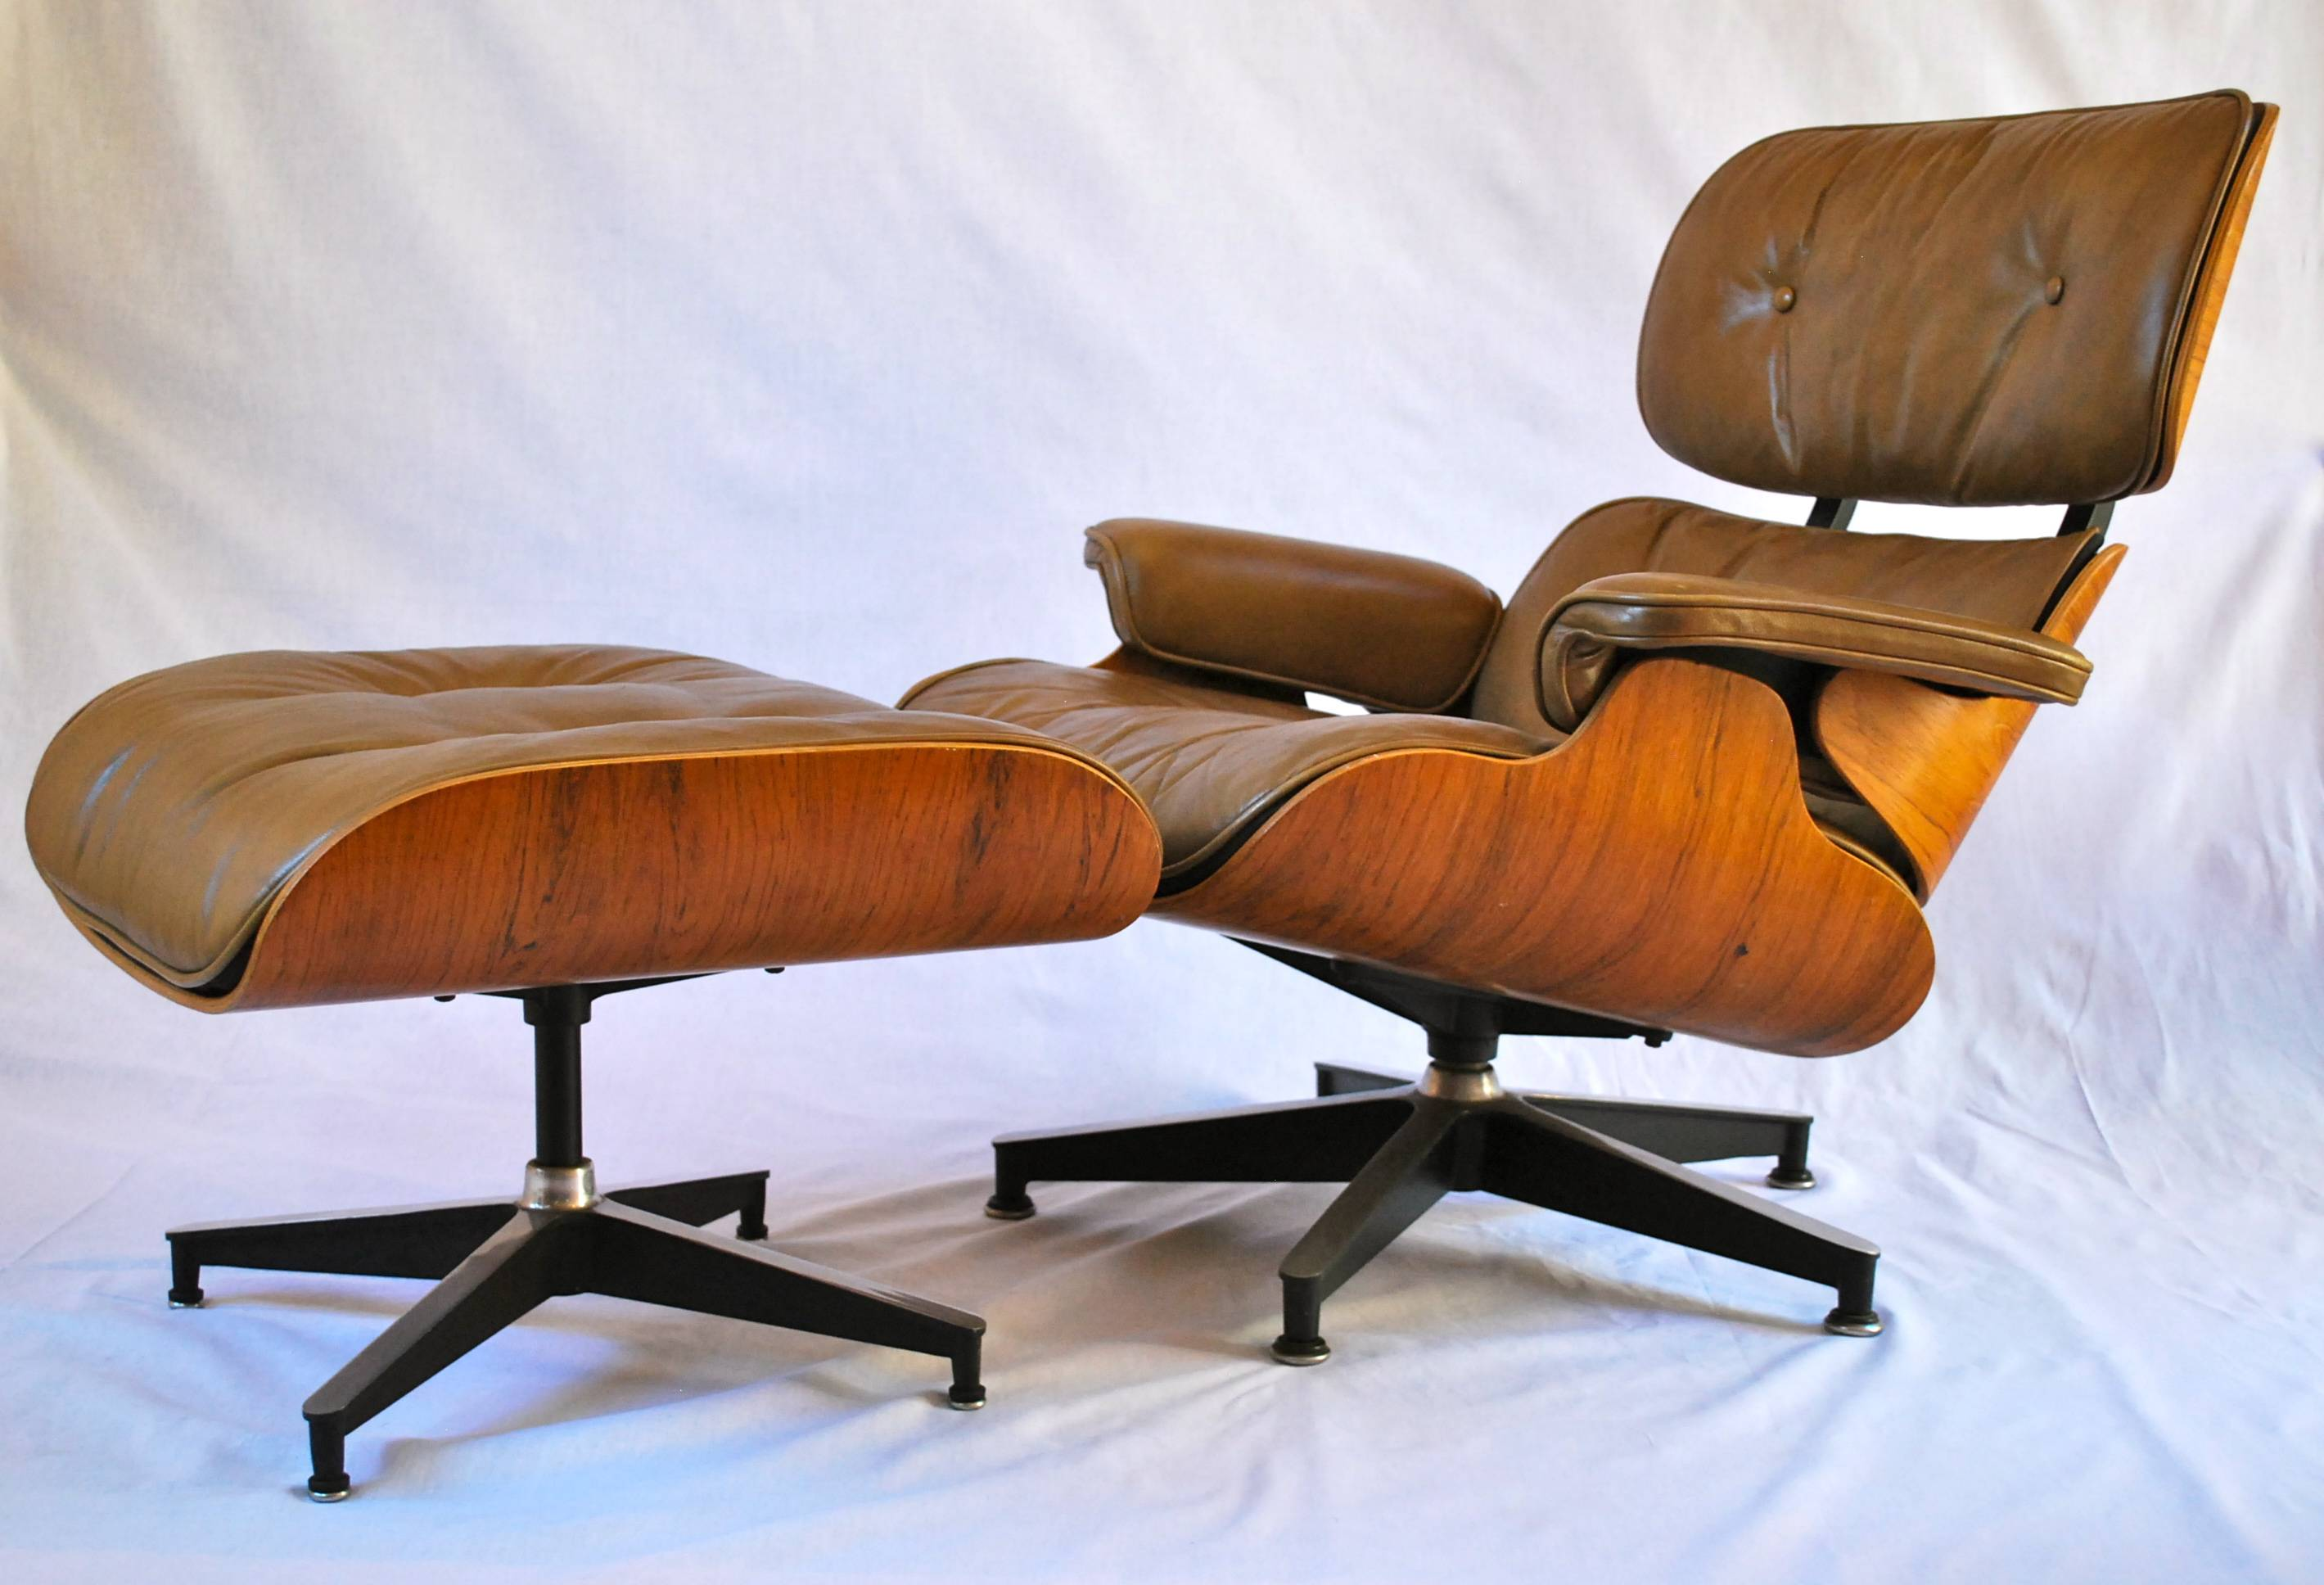 luxury beige eames chair for excellent lounge chair design ideas eames plastic chairs eames style shell chair eames style molded plastic eames arm shell chair side upholstered eames chair